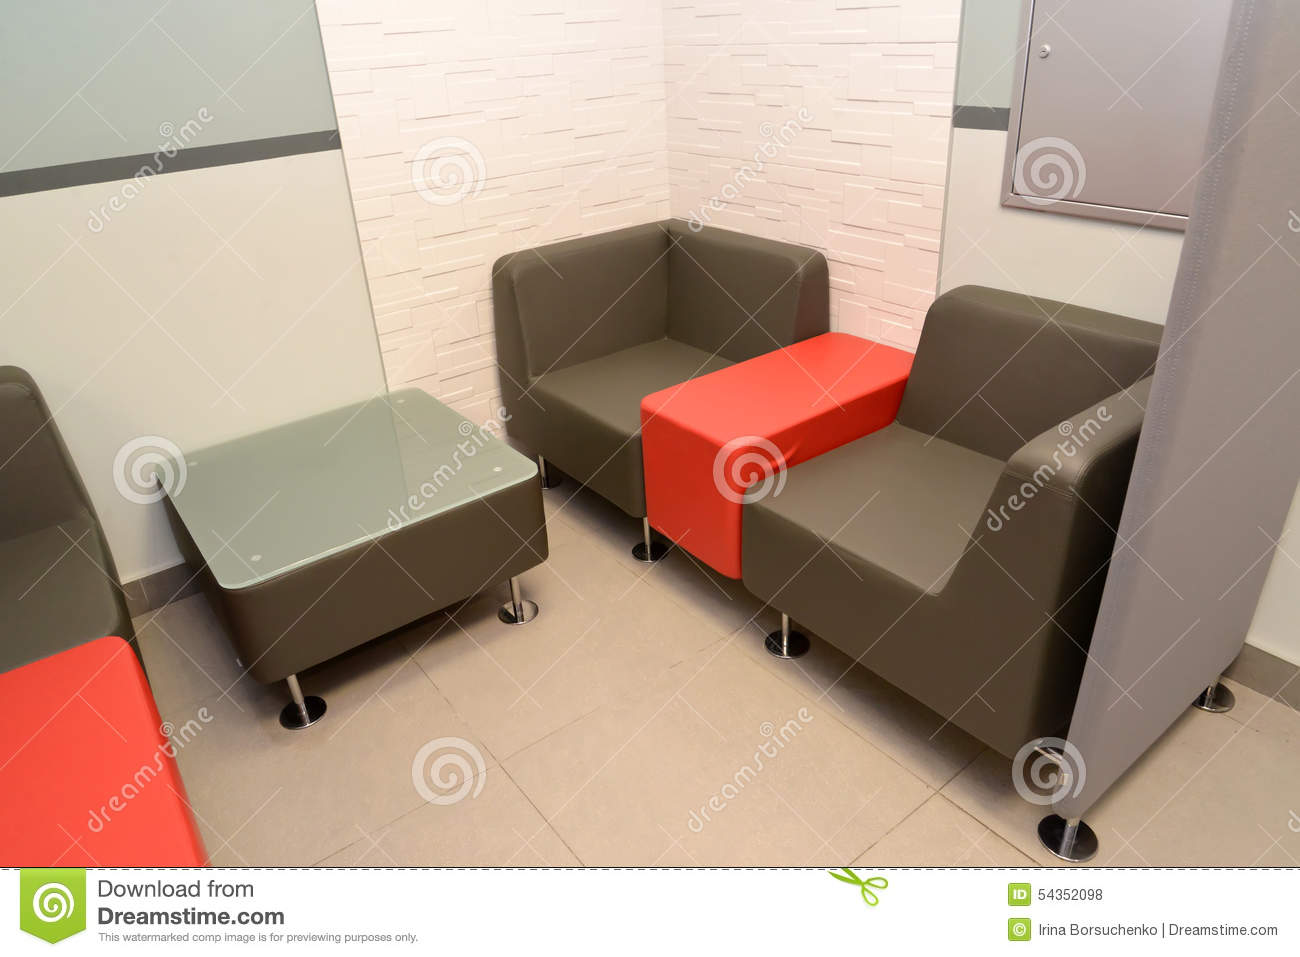 Furniture in a zone for negotiations of the personnel at for Furniture zone